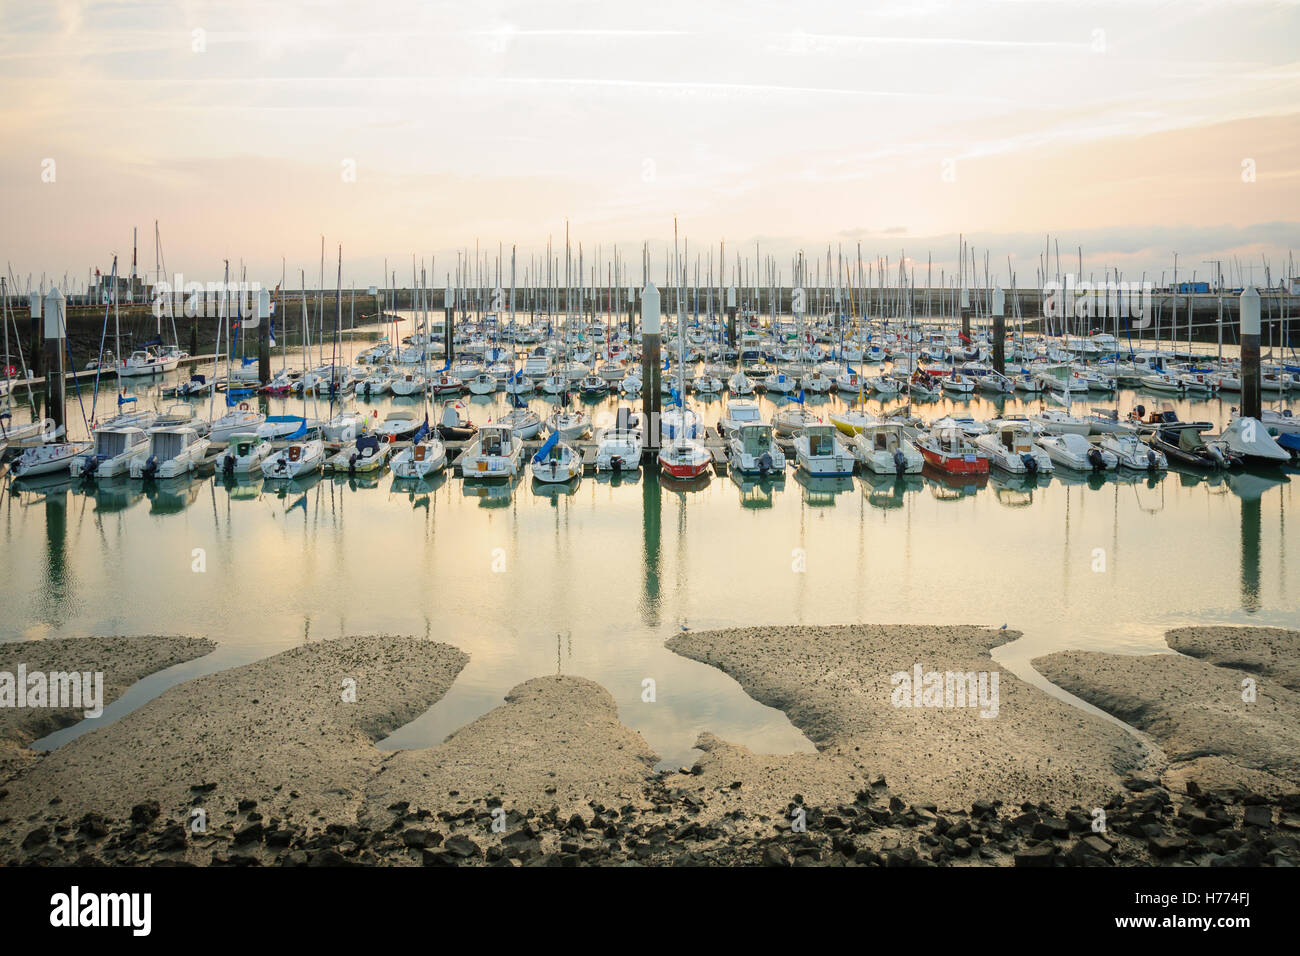 LE HAVRE, FRANCE - SEPTEMBER 16, 2012: Sunset view of the marina, in Le Havre, Normandy, France - Stock Image